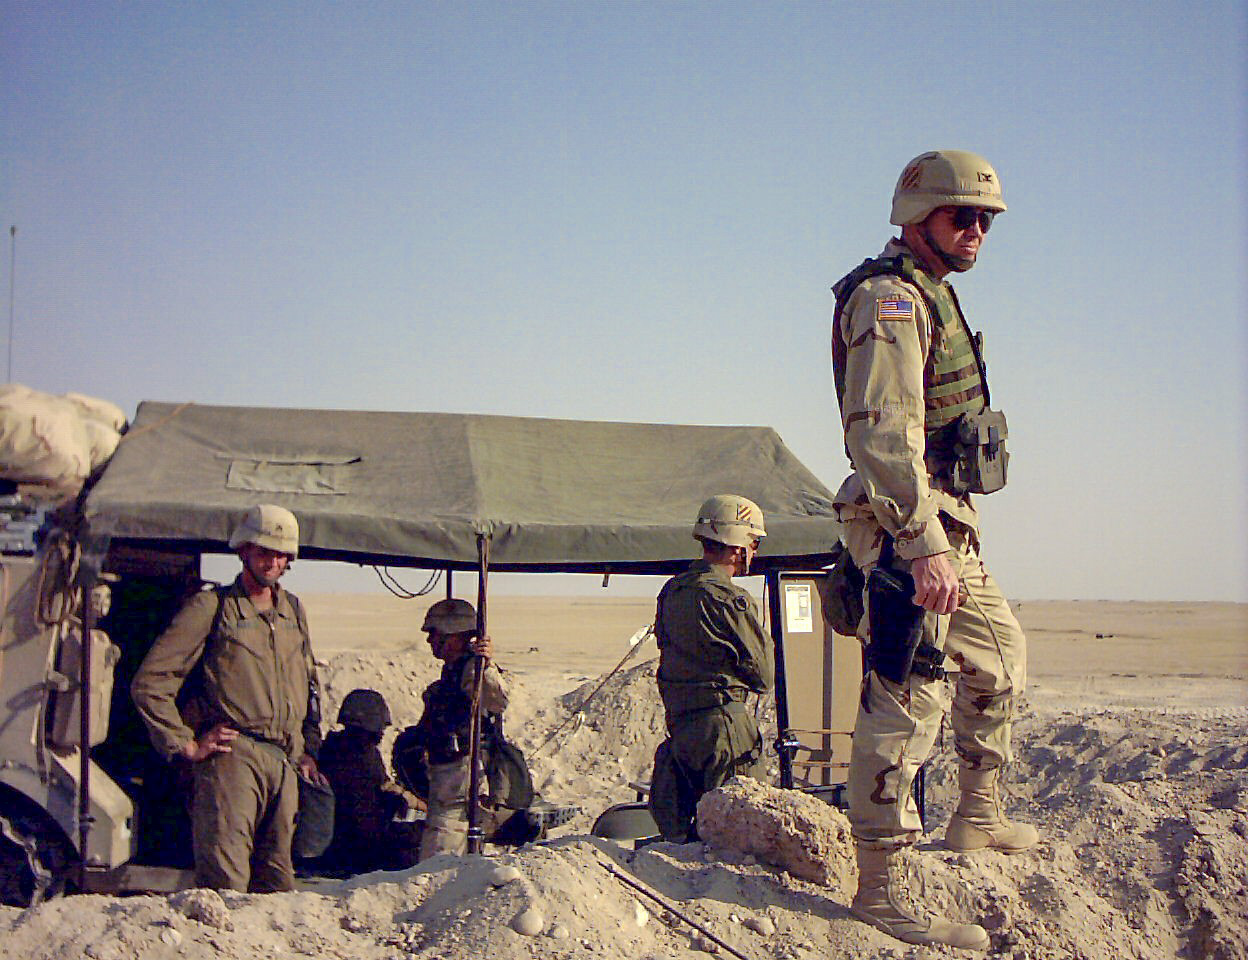 Col. David Perkins, Spartan 6, surveys his surroundings while preparing to invade Iraq during his tenure as the commander of 2nd Brigade, 3rd Infantry Division, in February 2003. (Army)